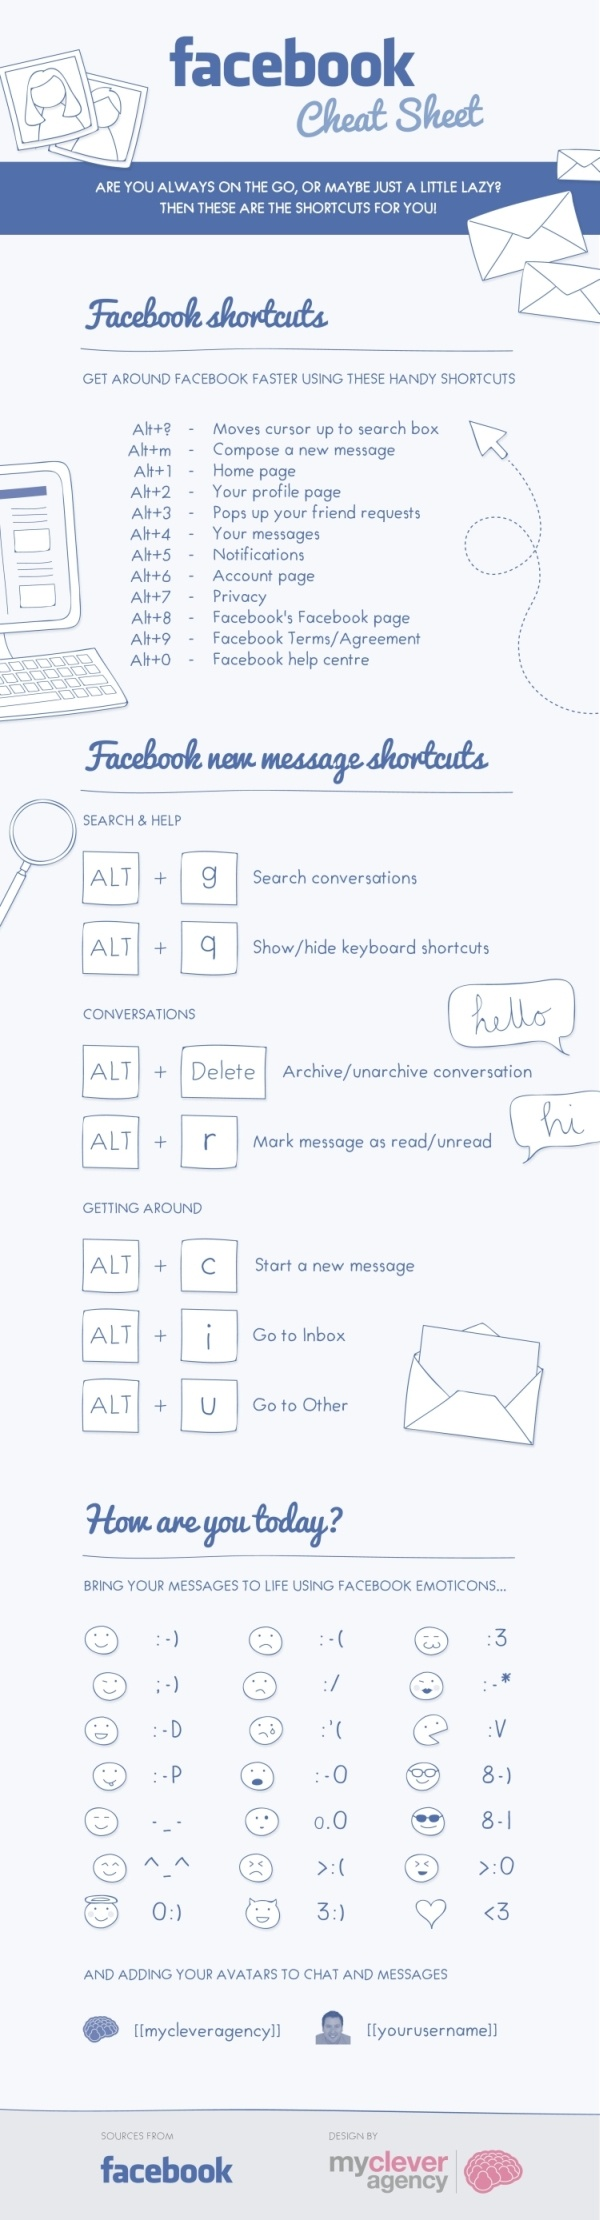 Facebook Cheat Sheet [INFOGRAPHIC]